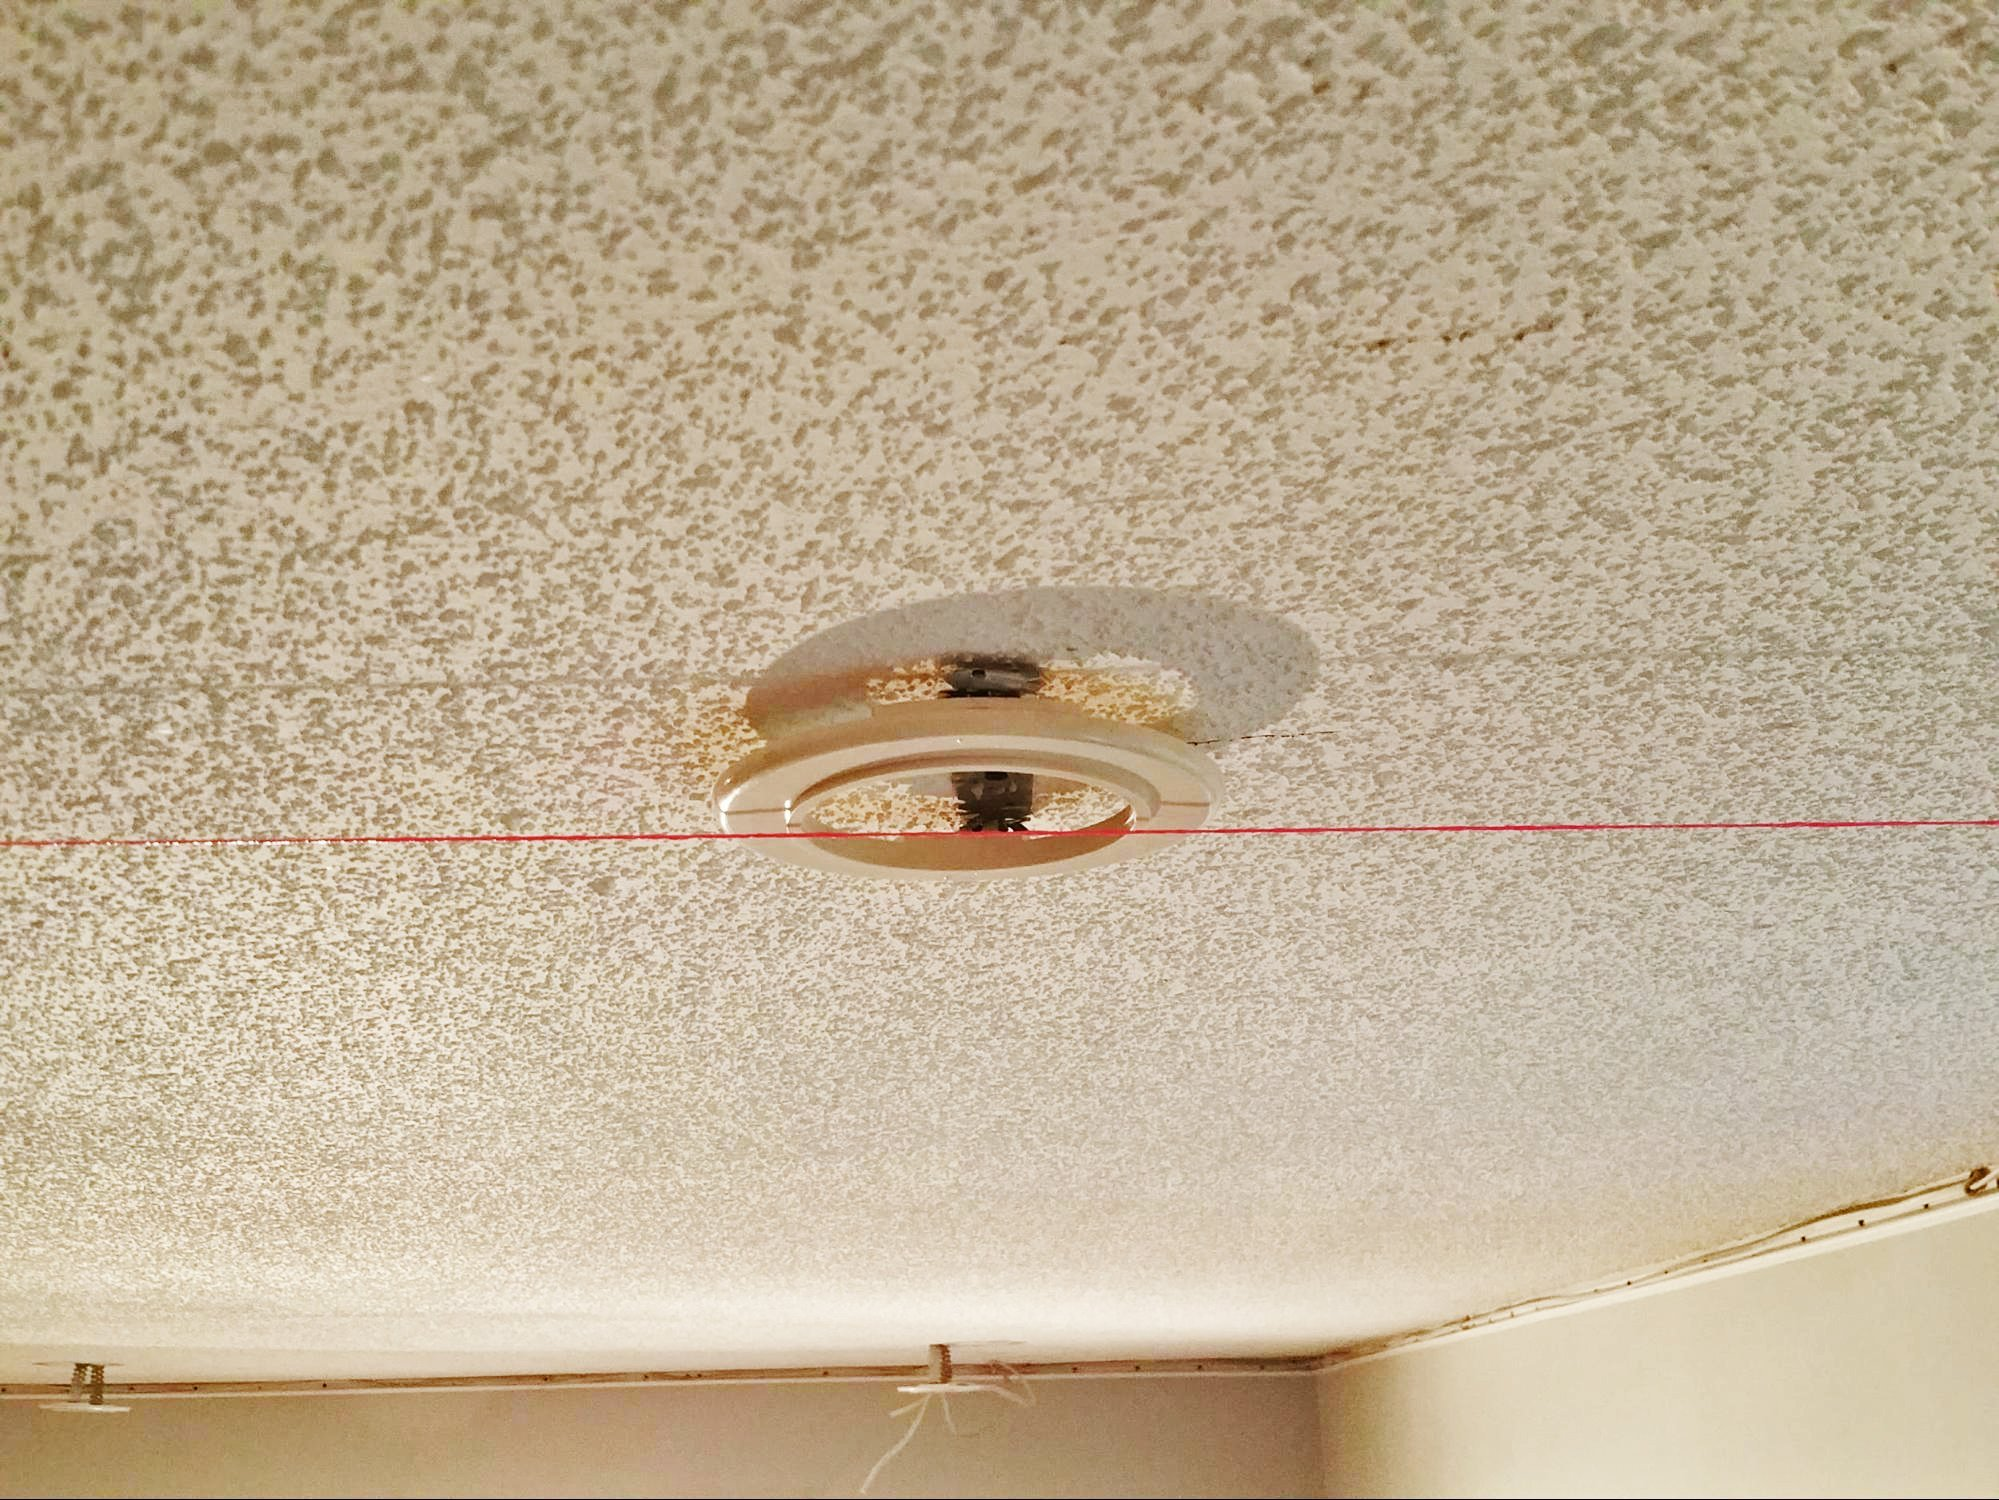 How to Install a Stretch Ceiling System with LED Recessed Lights